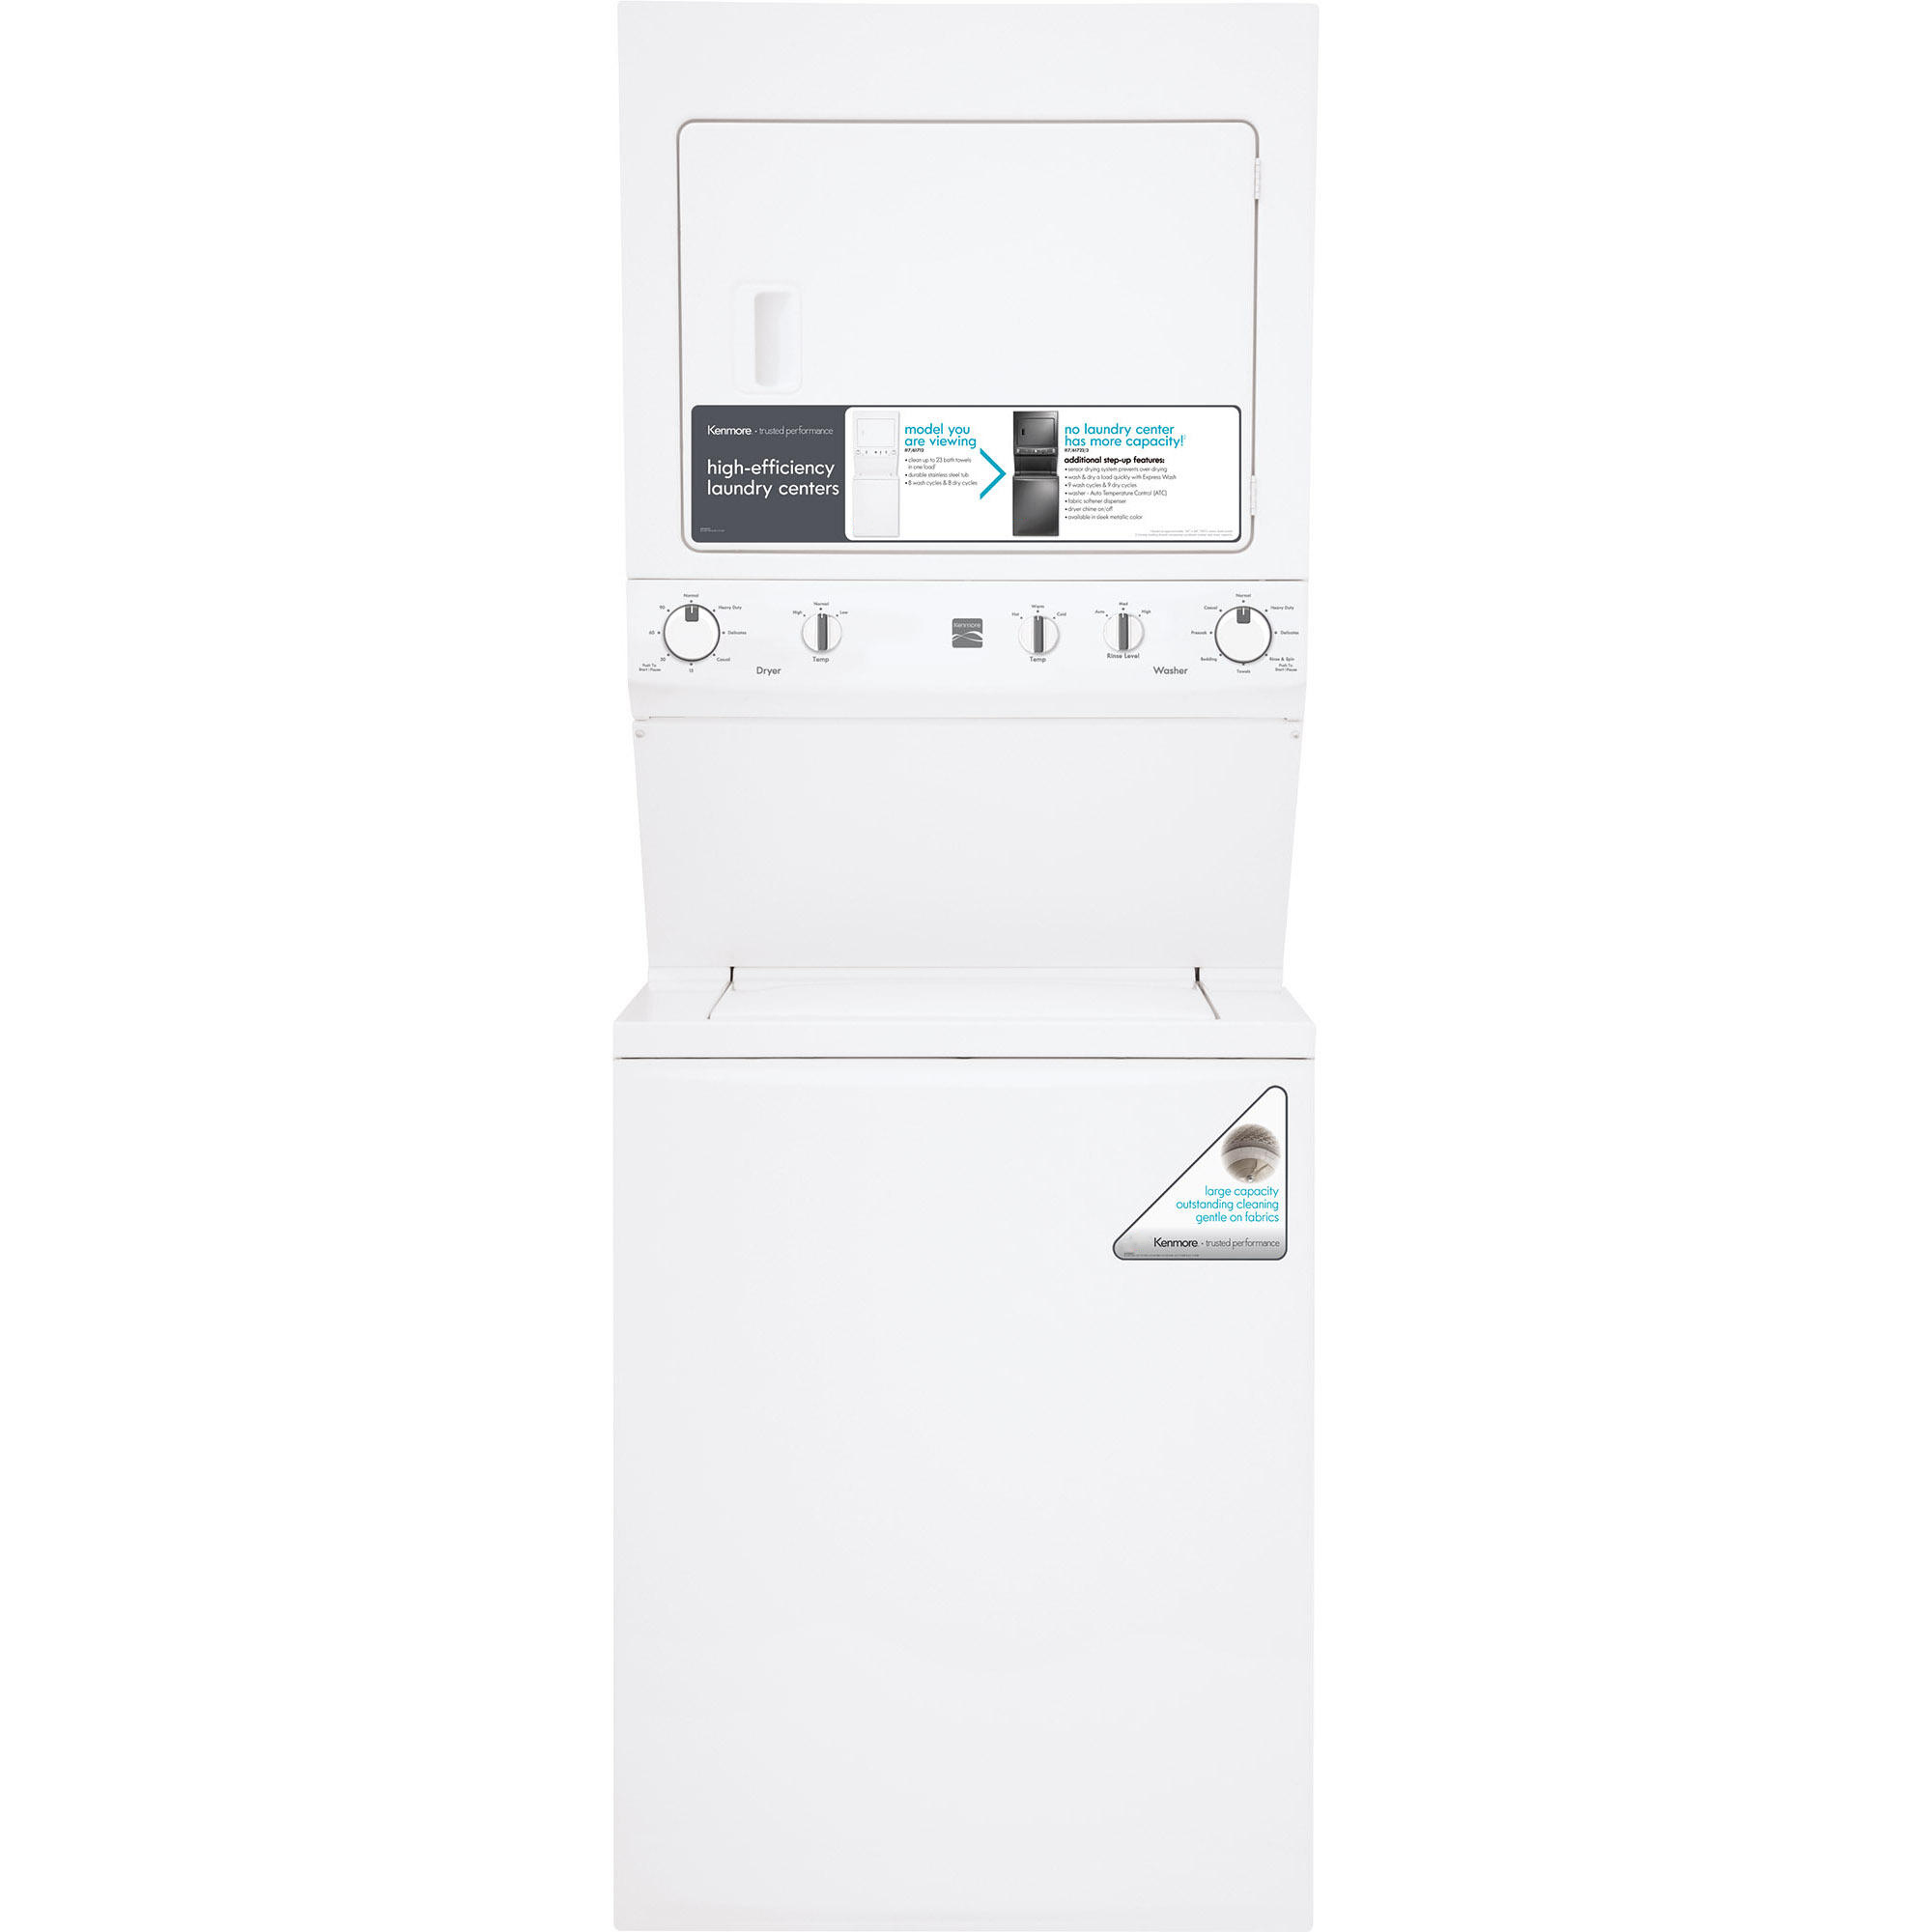 "Kenmore 27"" 3 8 cu ft High Efficiency Electric Laundry"